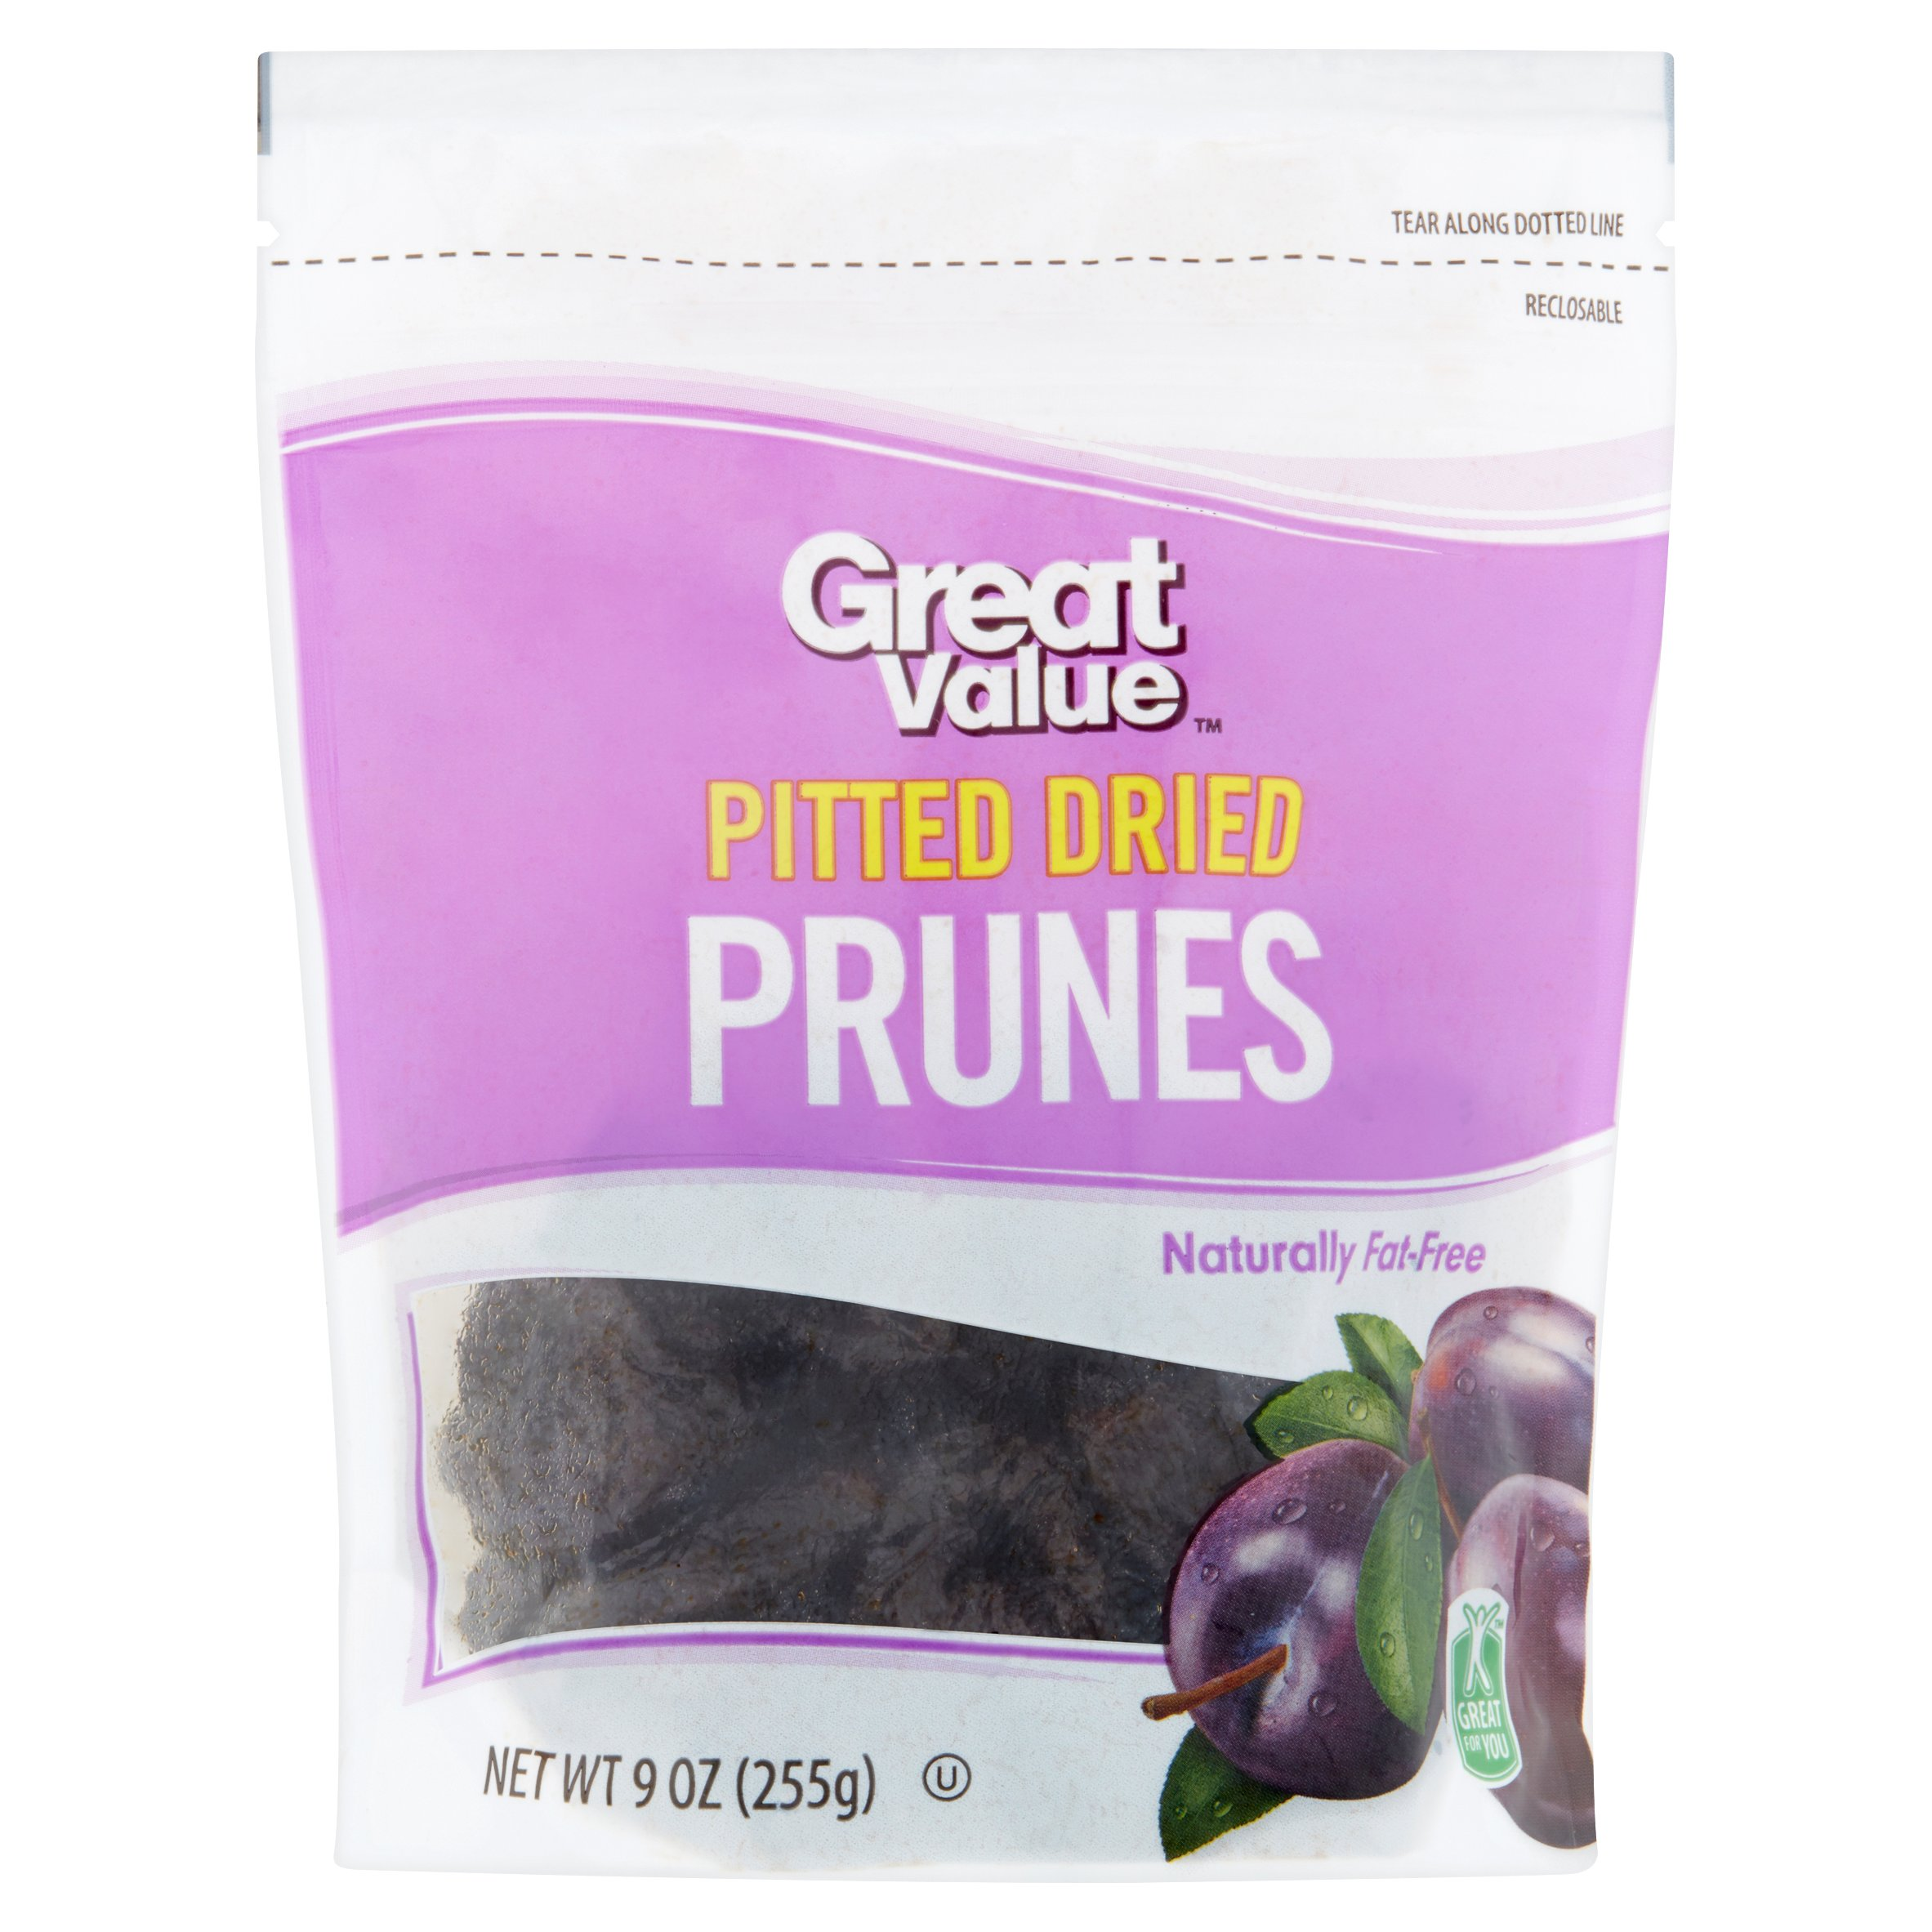 Great Value Pitted Dried Prunes, 9 oz